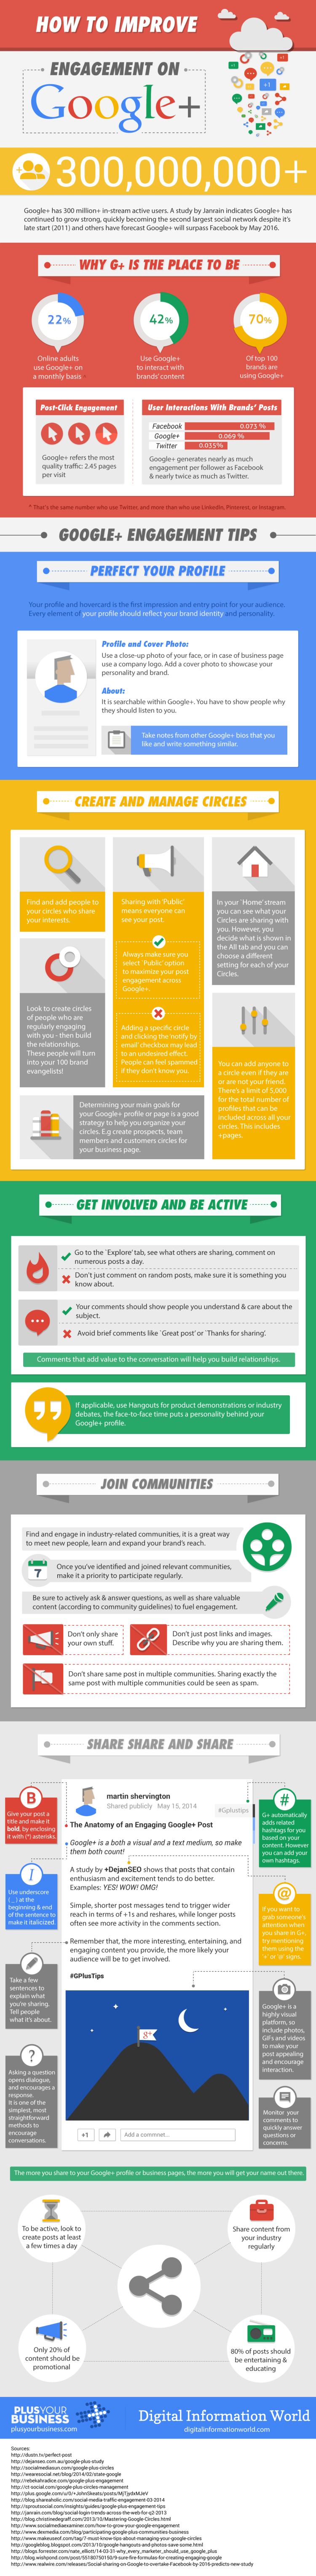 how-to-improve-engagement-on-googleplus-infographic-2014-june